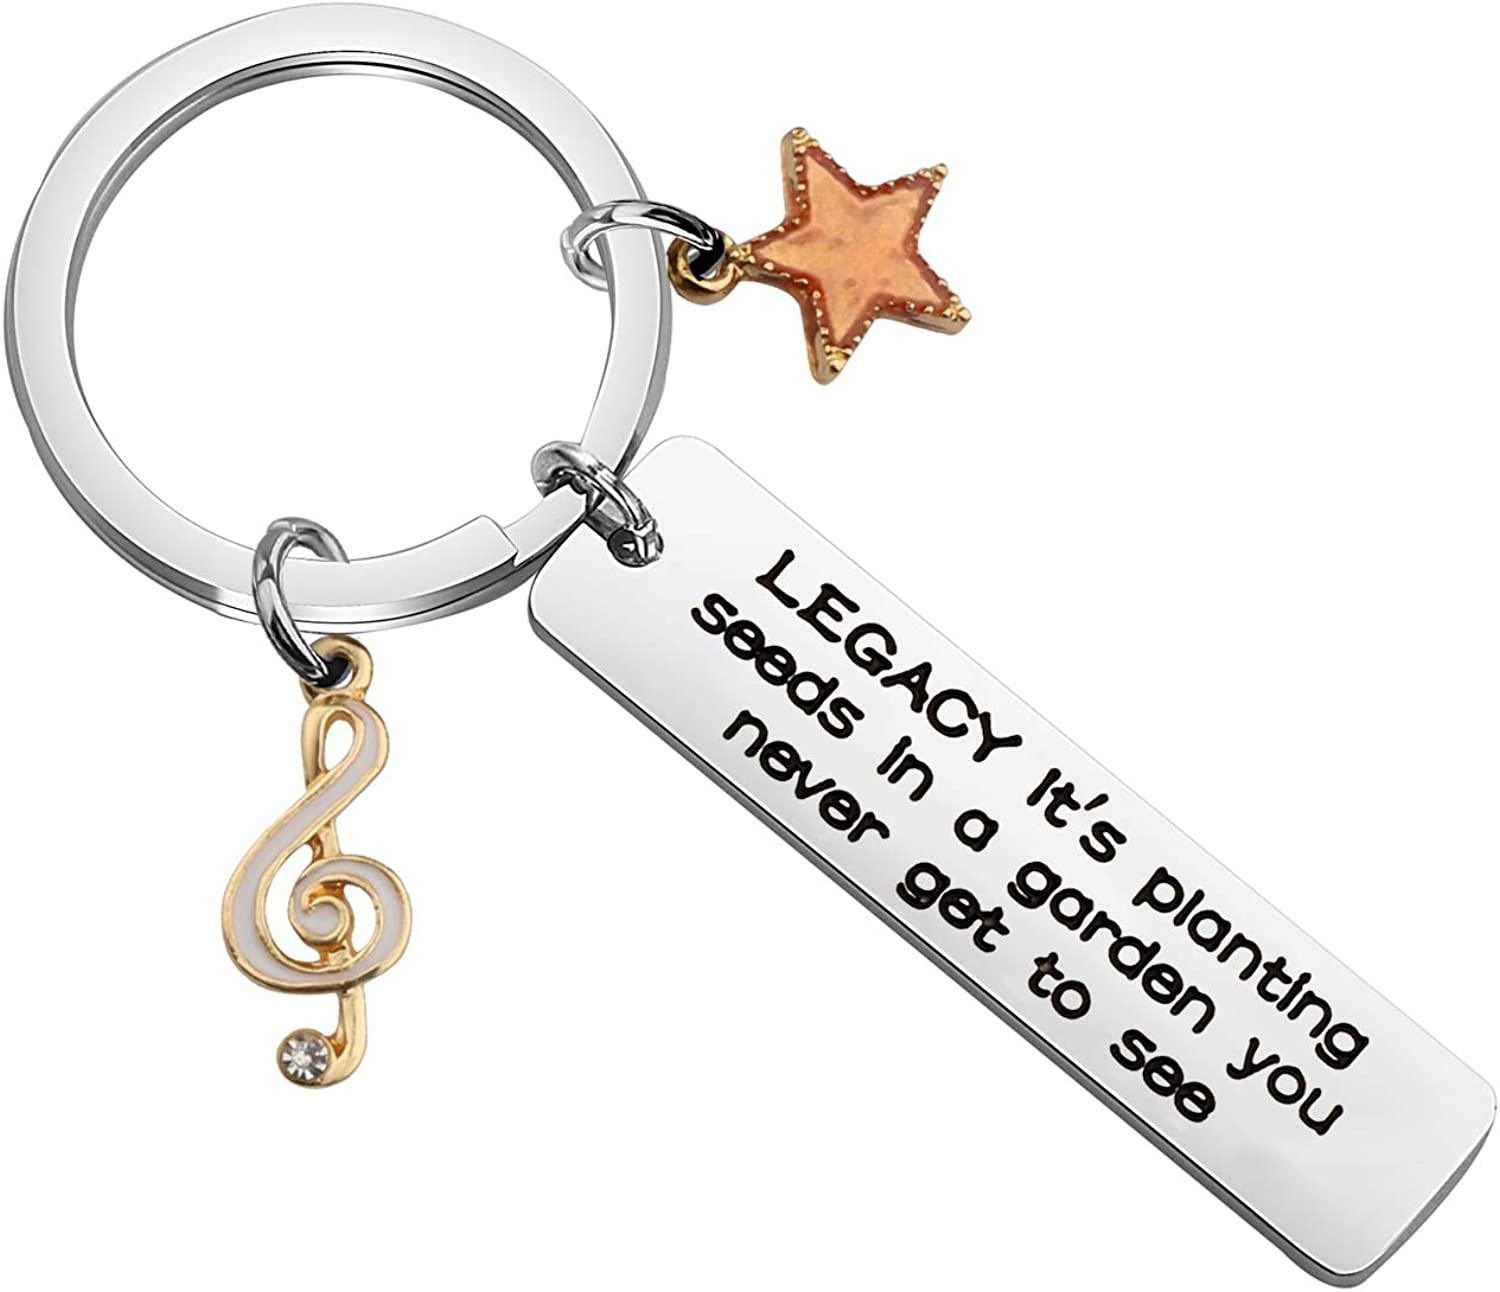 CHOORO Hamilton Musical Gift Hamilton Inspirational Quote Legacy It's Planting Seeds in a Garden You Never Get to See Keychain Broadway Musical Gift